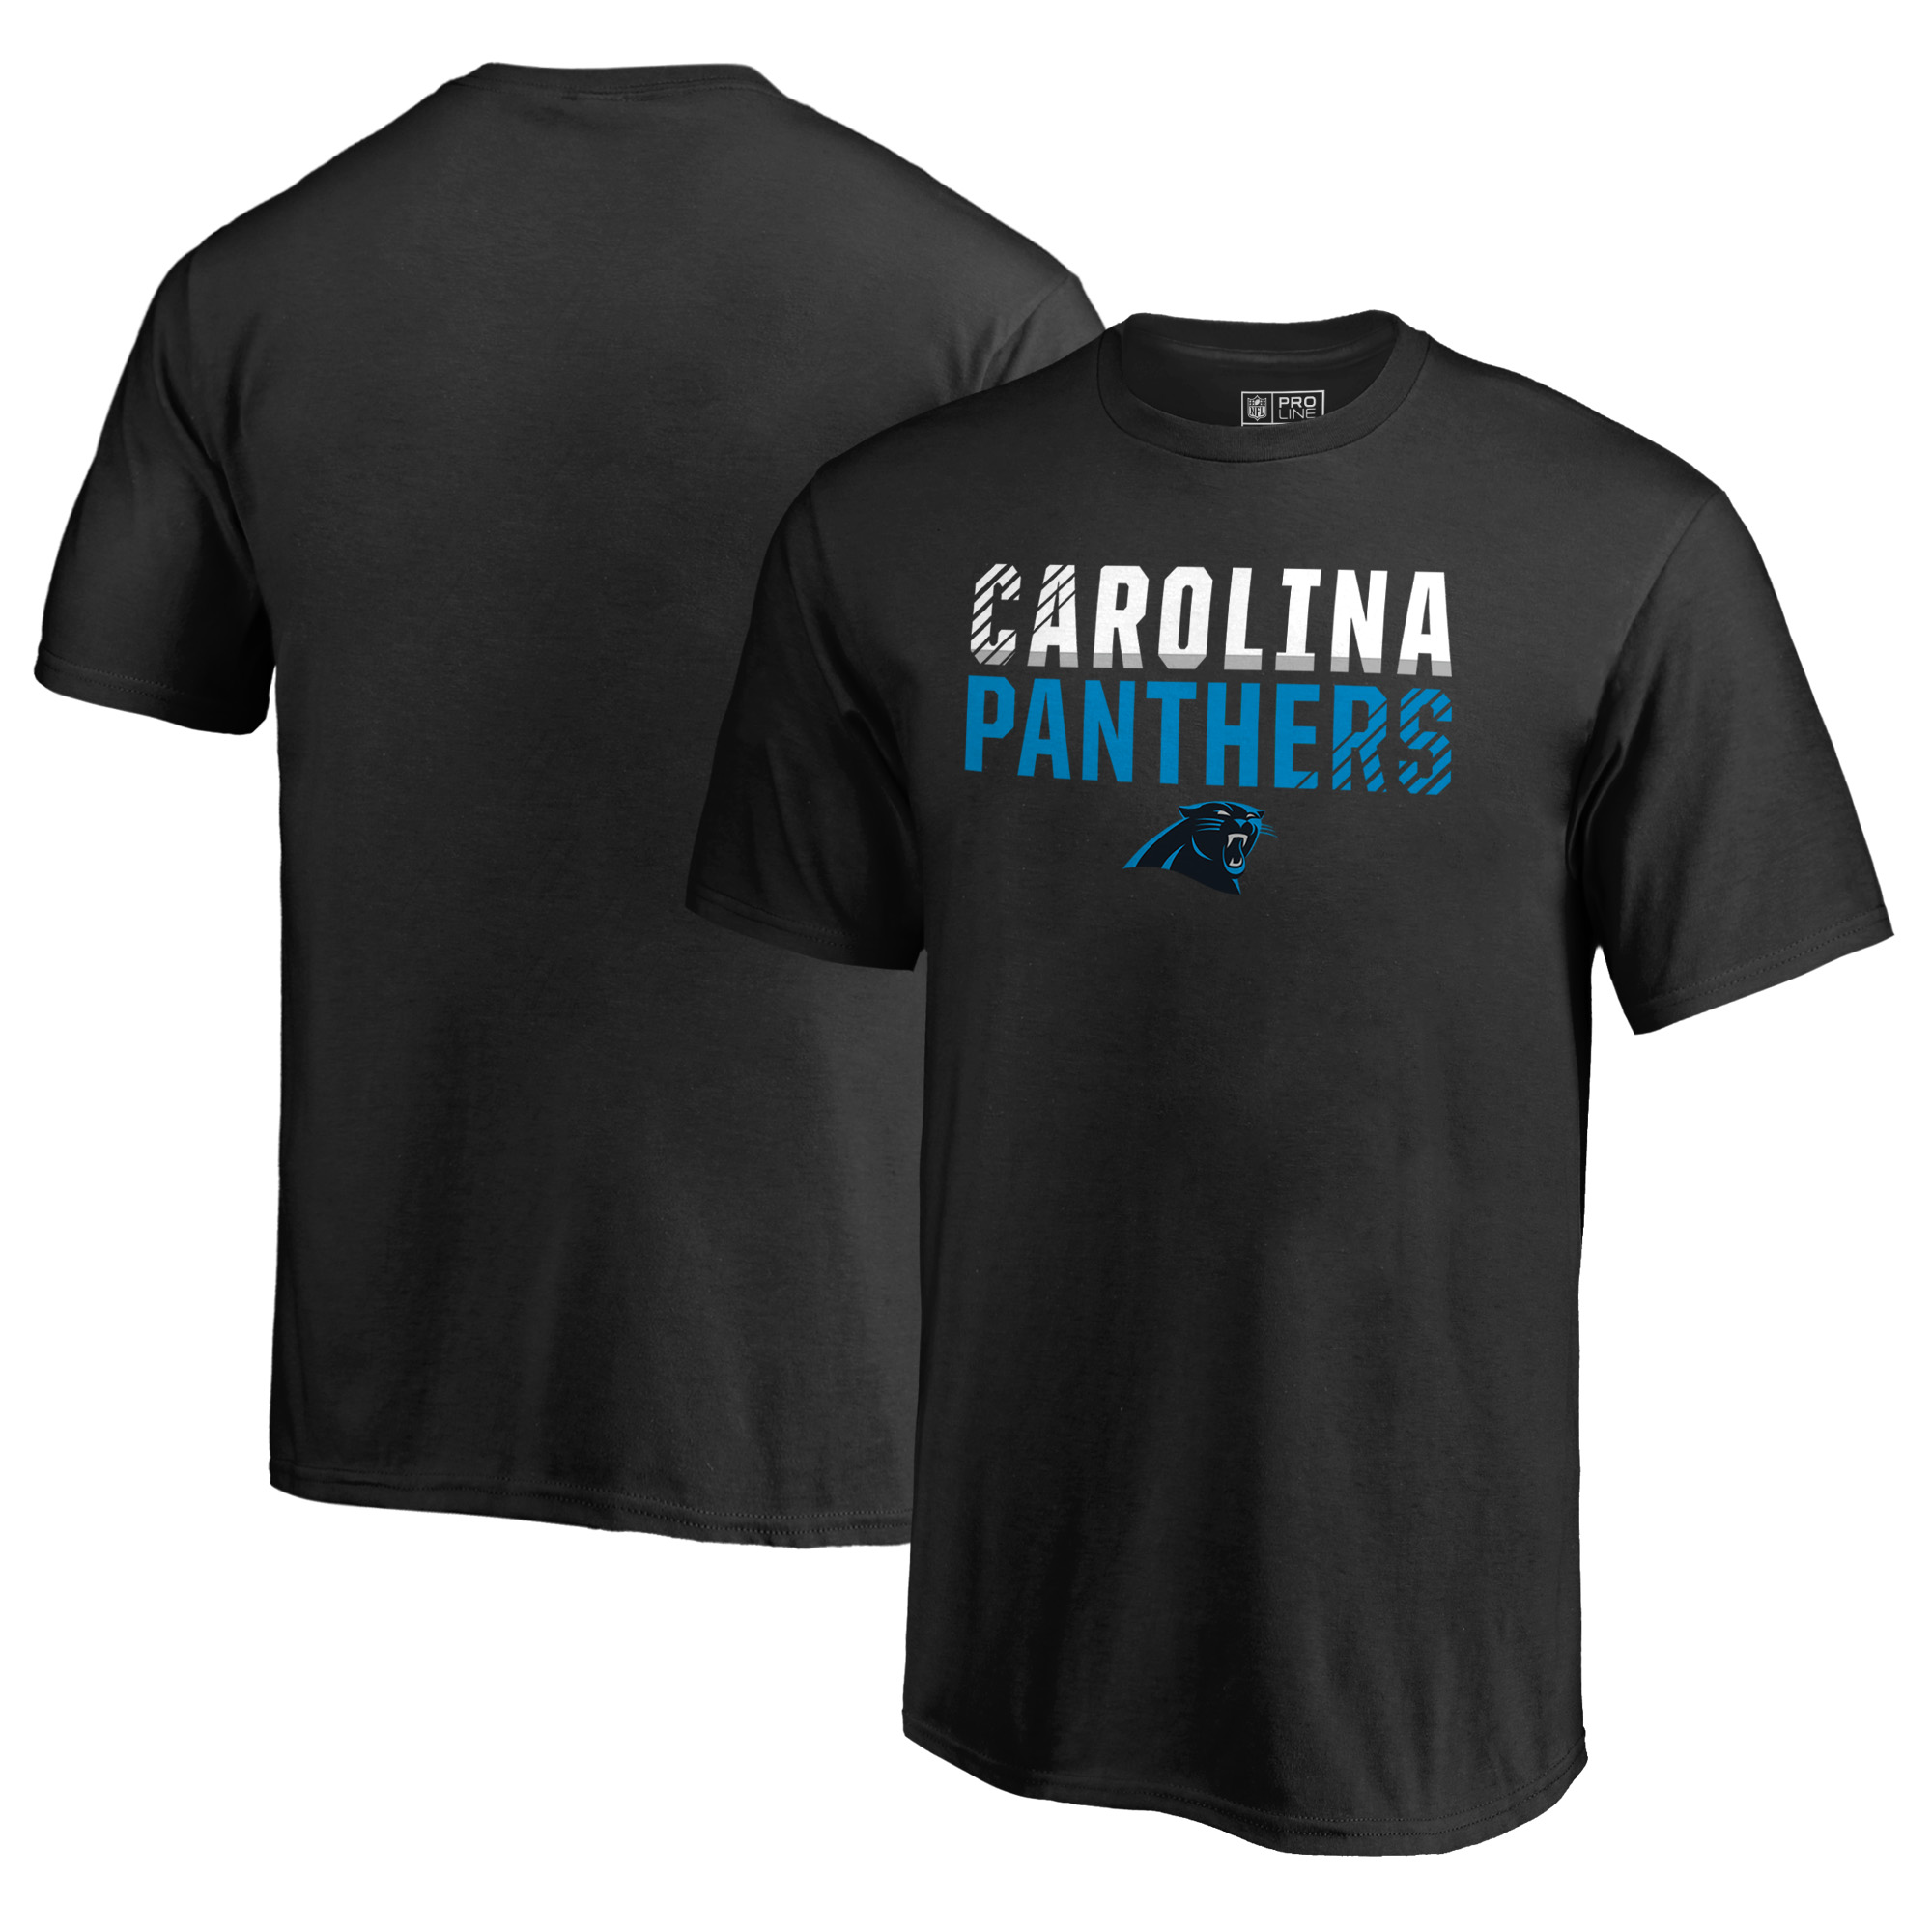 Carolina Panthers NFL Pro Line by Fanatics Branded Youth Iconic Collection Fade Out T-Shirt - Black